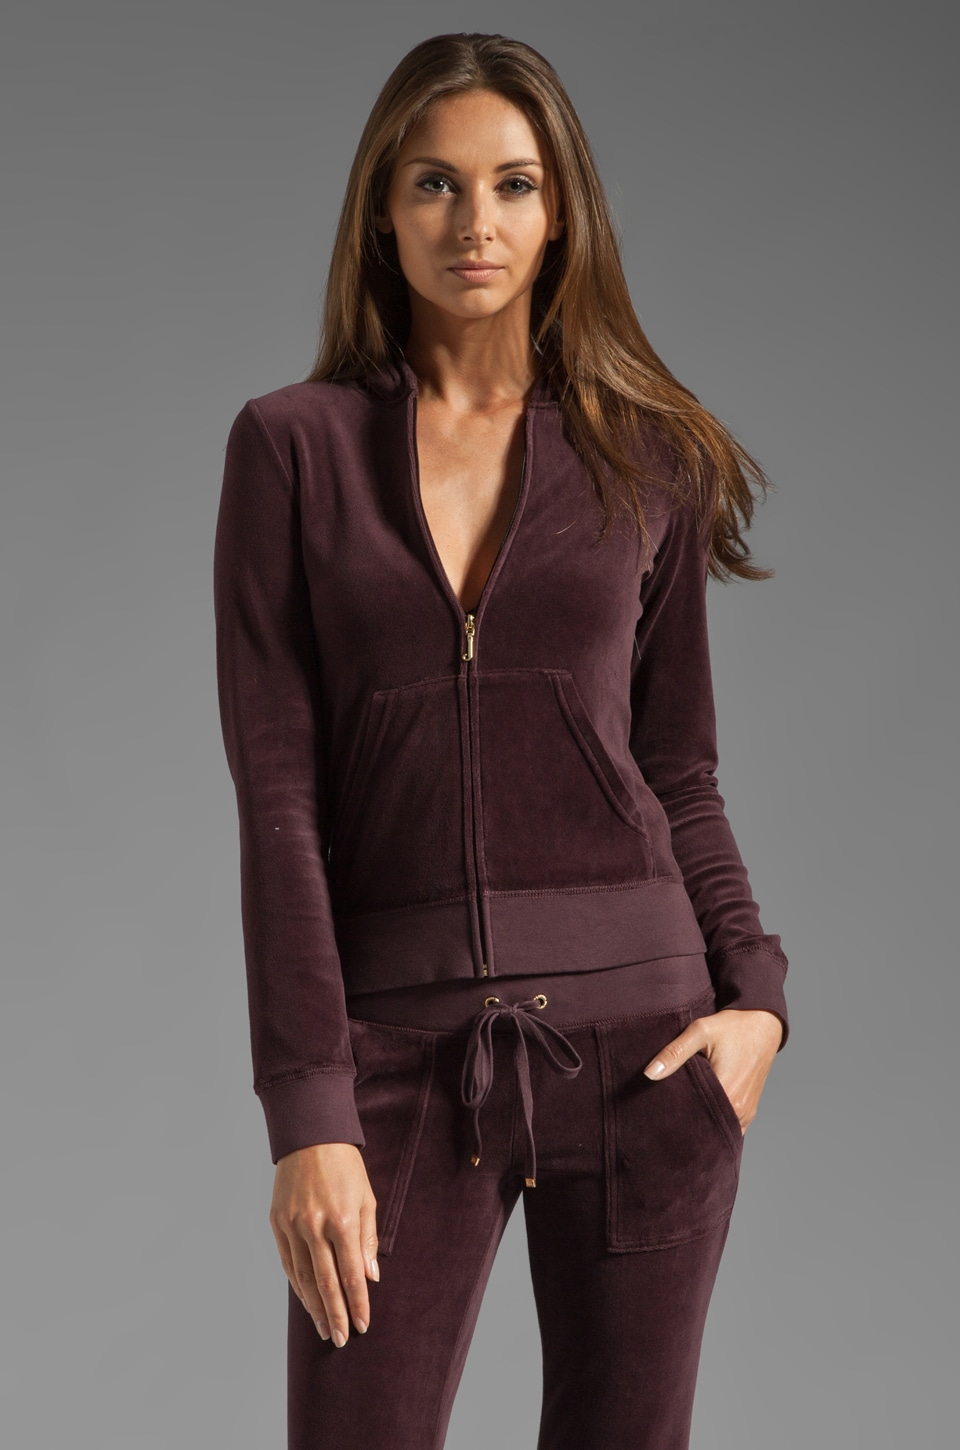 Juicy Couture Velour Original Zip Hoodie in Dark Cabernet